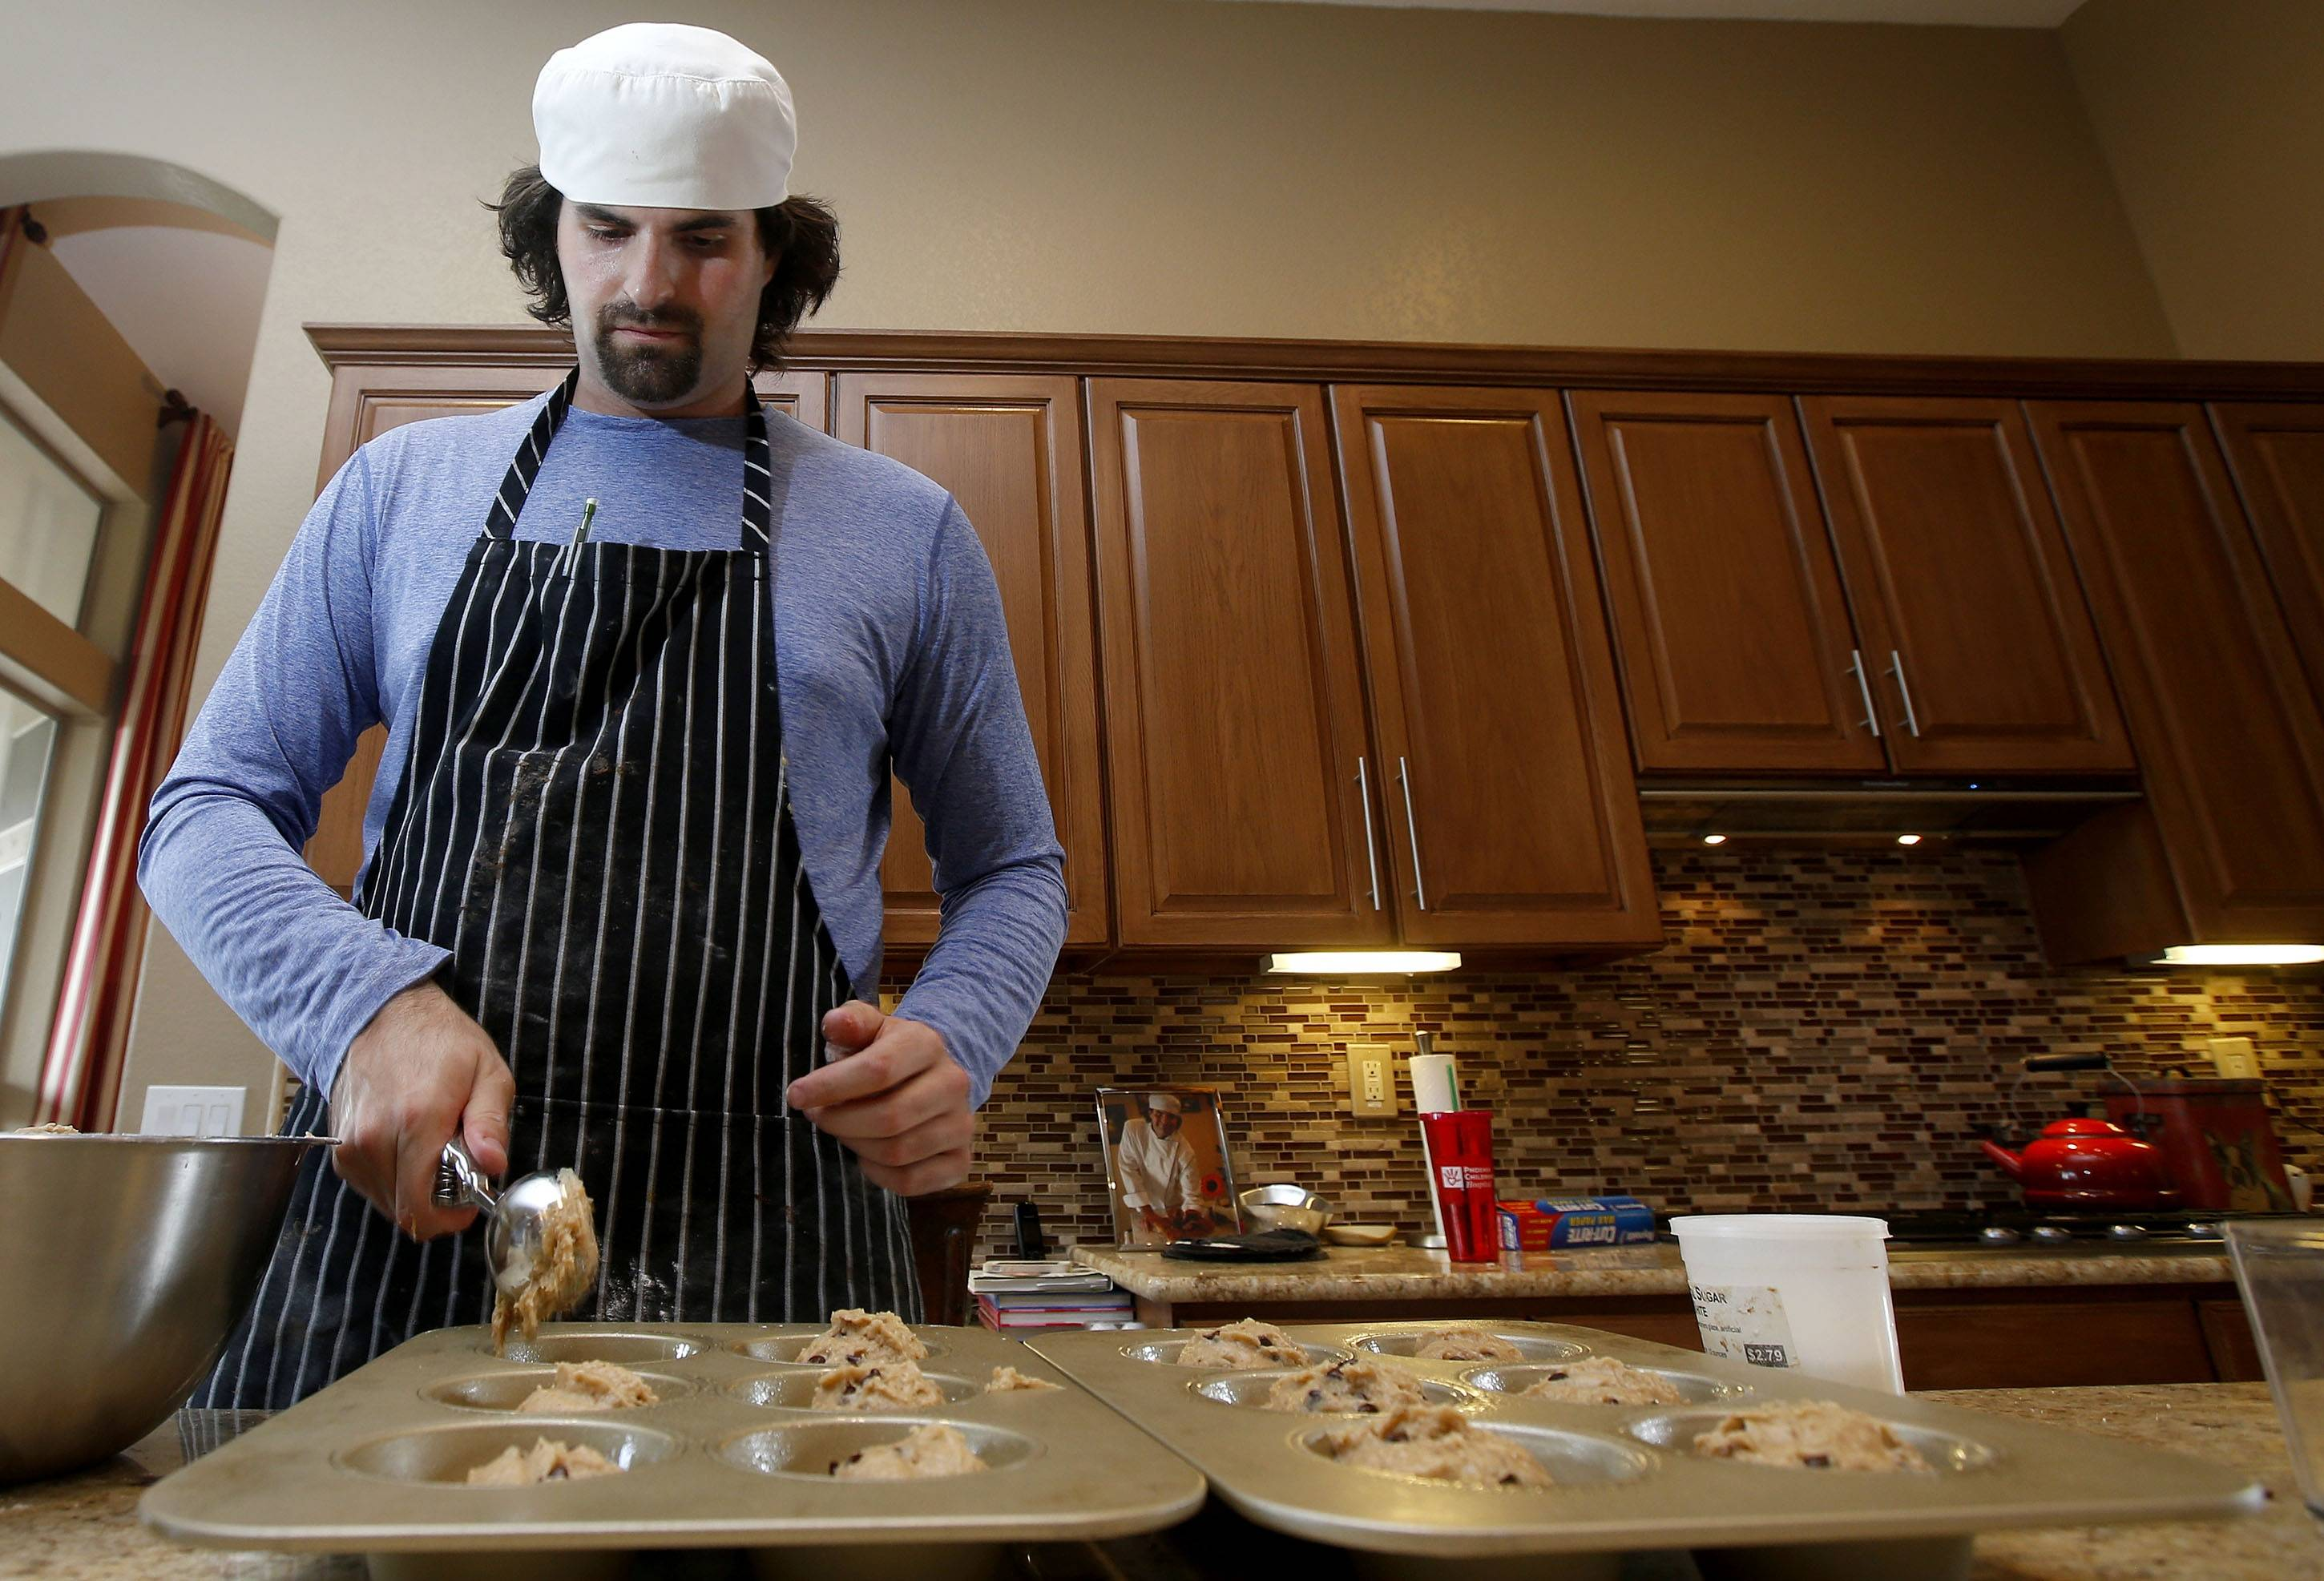 Matt Cottle, owner of Stuttering King Bakery, works a new batch of chocolate chip banana muffins in his parents' kitchen in Scottsdale, Ariz.